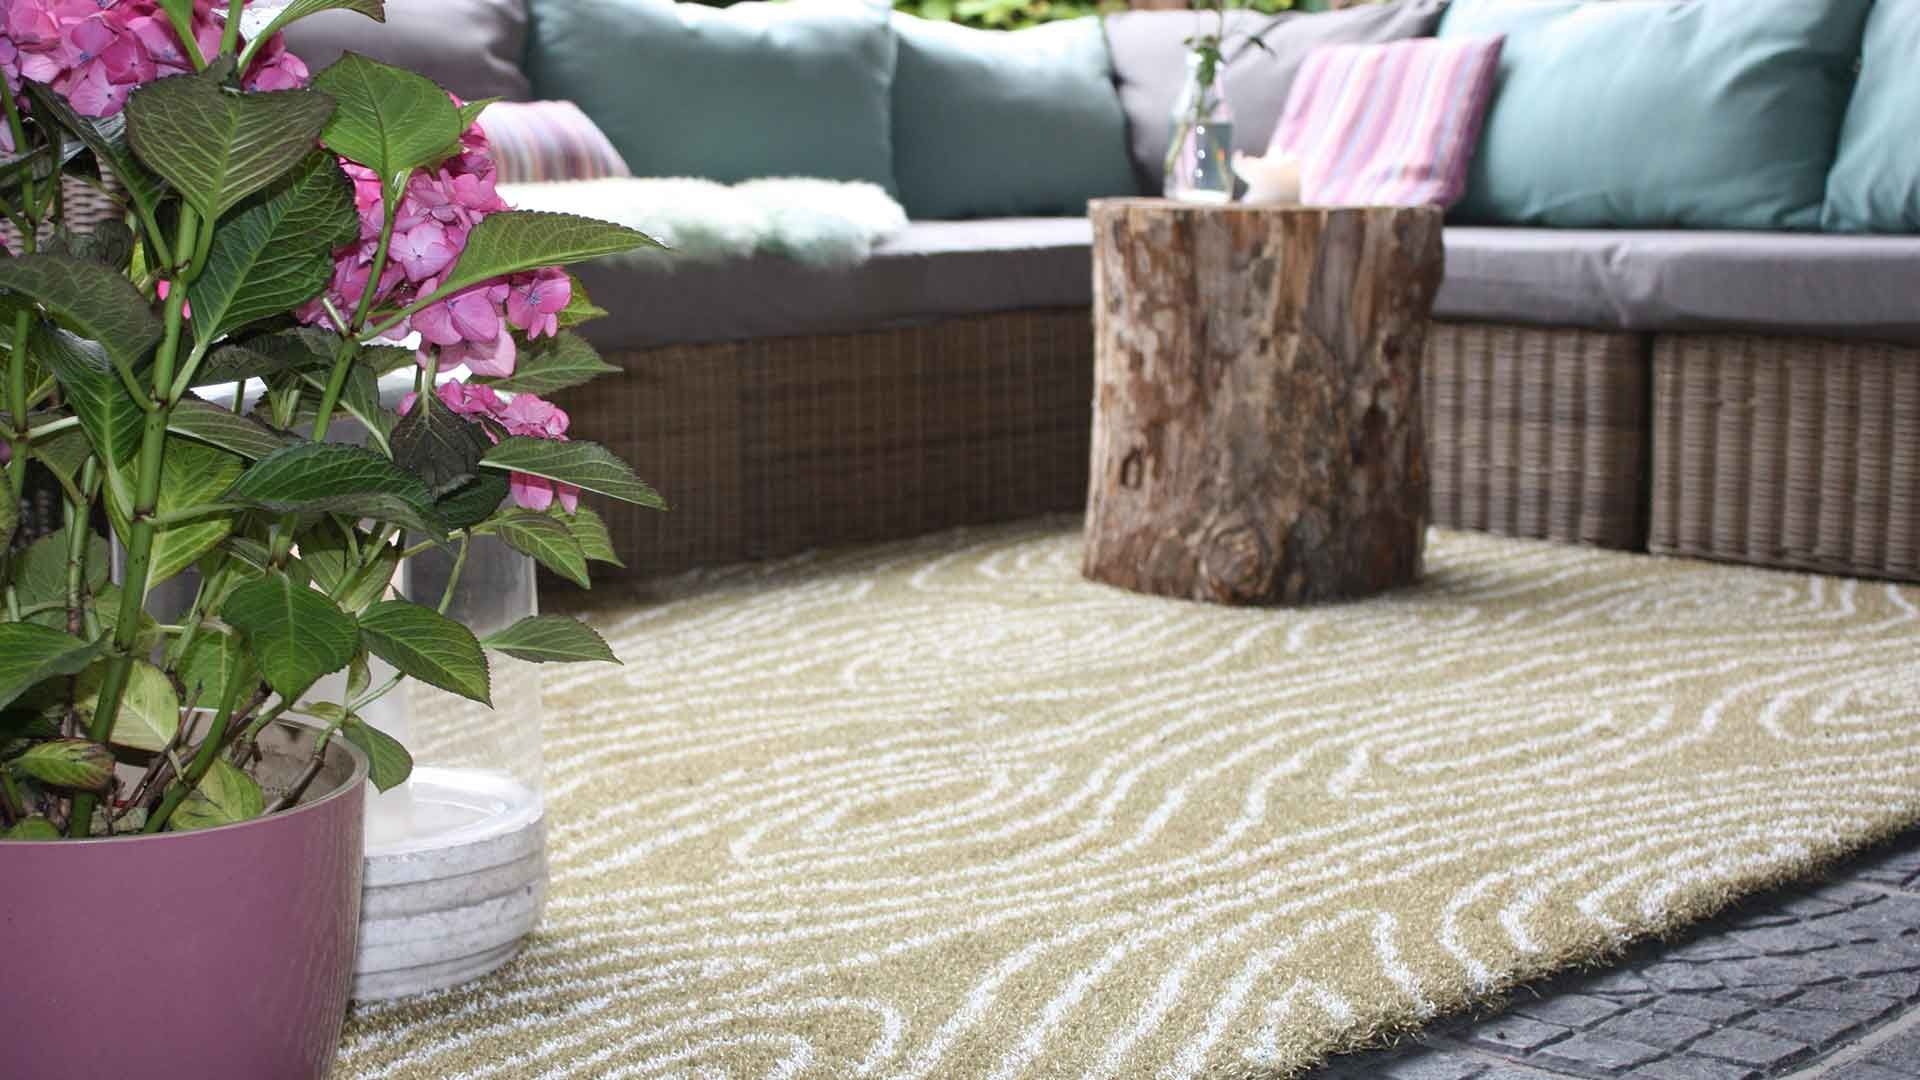 Outdoorcarpets Are The In Component Nowadays And Are A Standing Photo Carpet Abudhabi Has A Substantial Sort O Outdoor Carpet Carpet Companies Buying Carpet